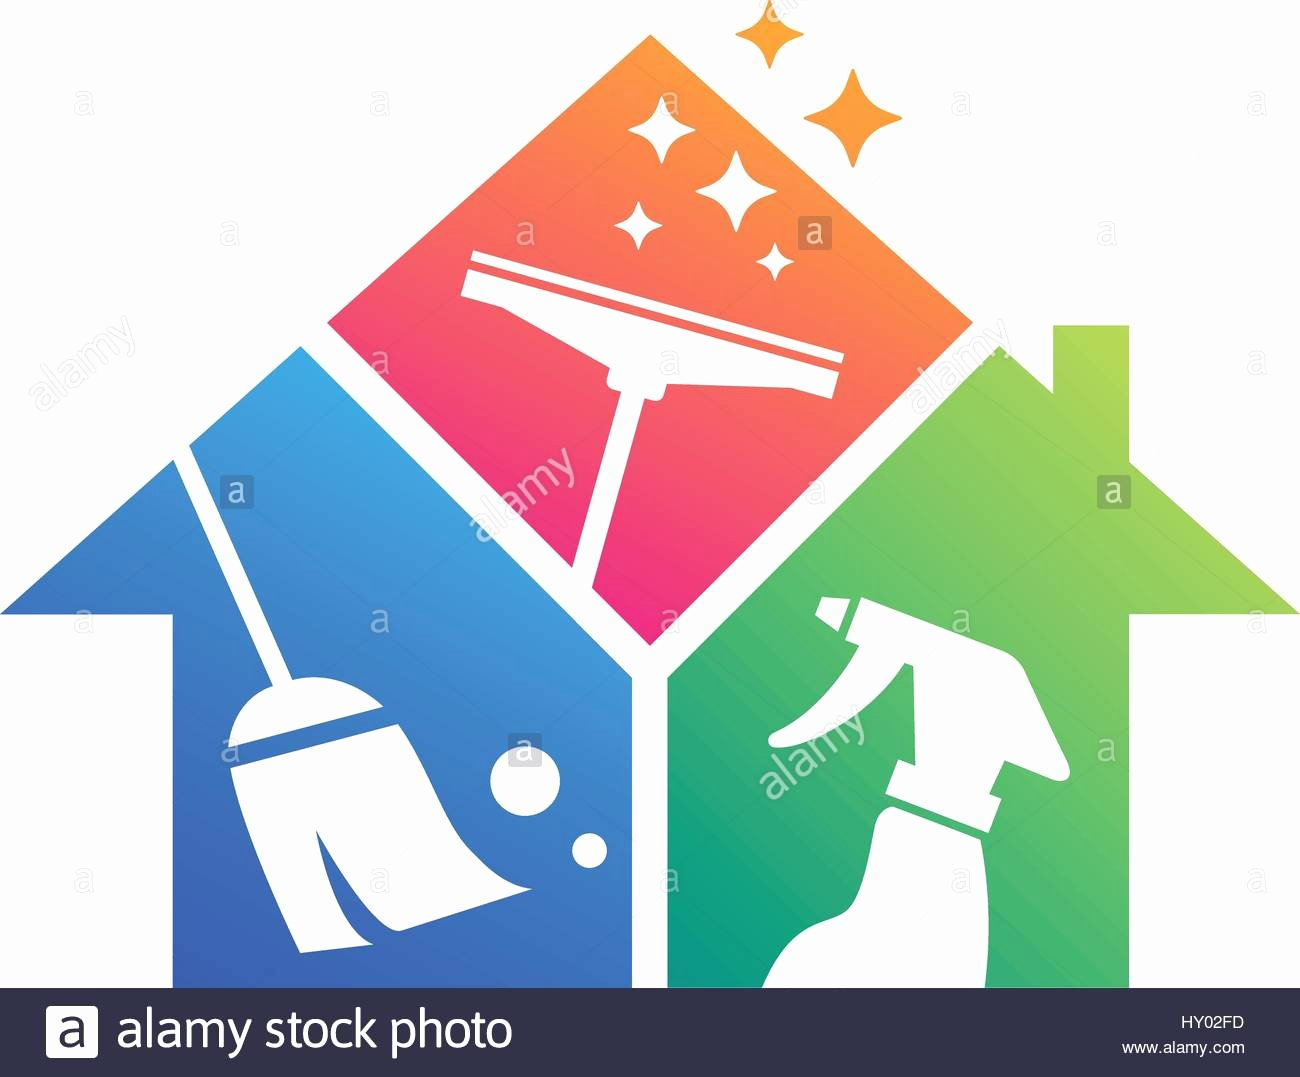 House Cleaning Logo Images Fresh Home Cleaning Cleaning Service Building Cleaning Vector Stock Vector Art & Illustration